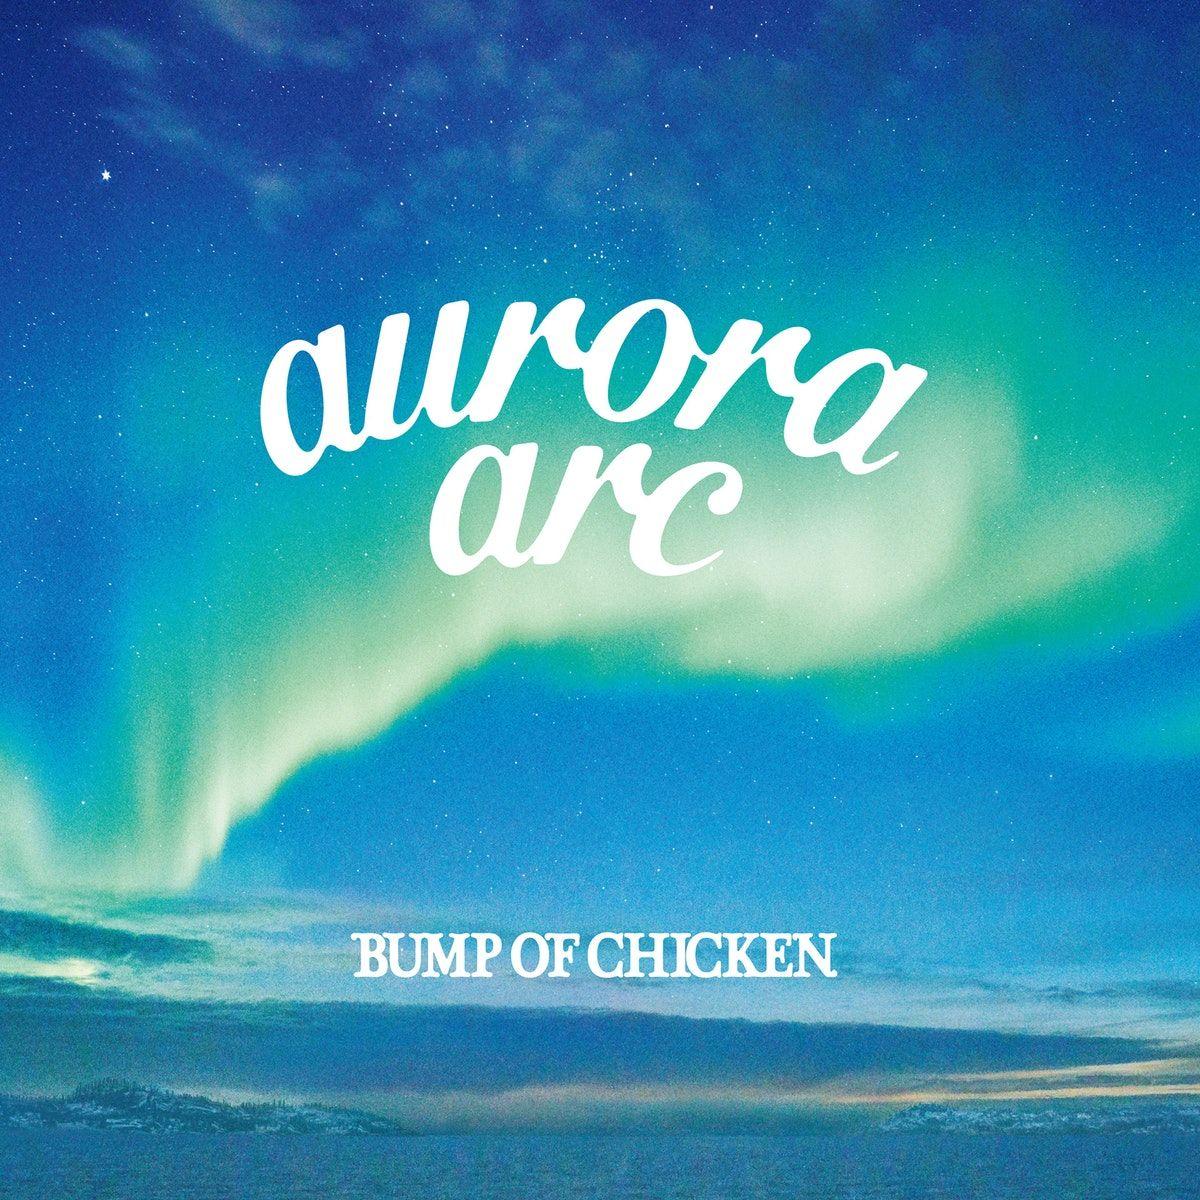 New Album Aurora Arc Tour 19 Aurora Ark Bump Of Chicken Official Website バンプオブチキン バンプ メーデー